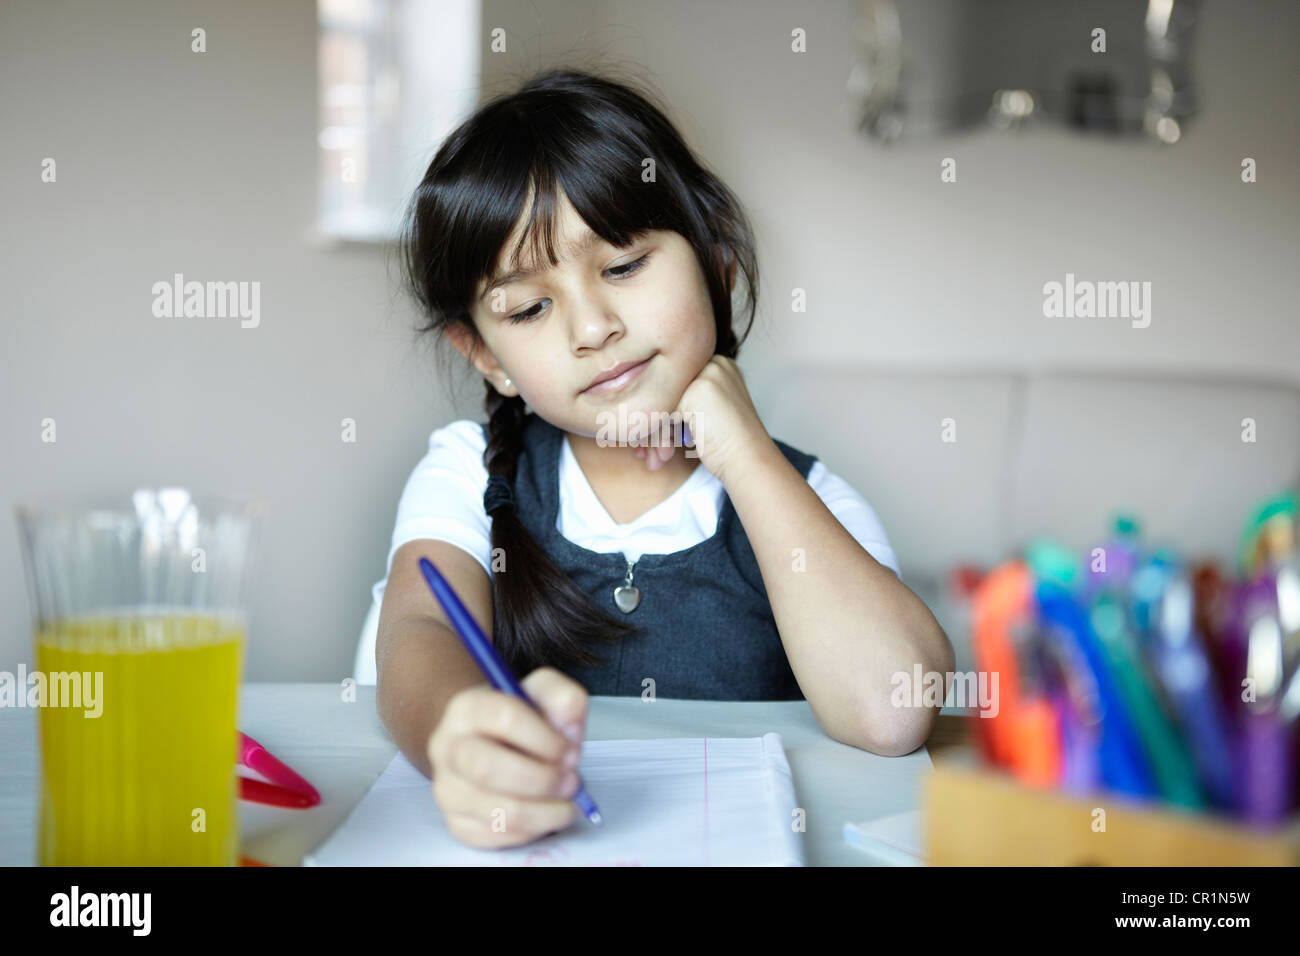 Schoolgirl writing at desk - Stock Image